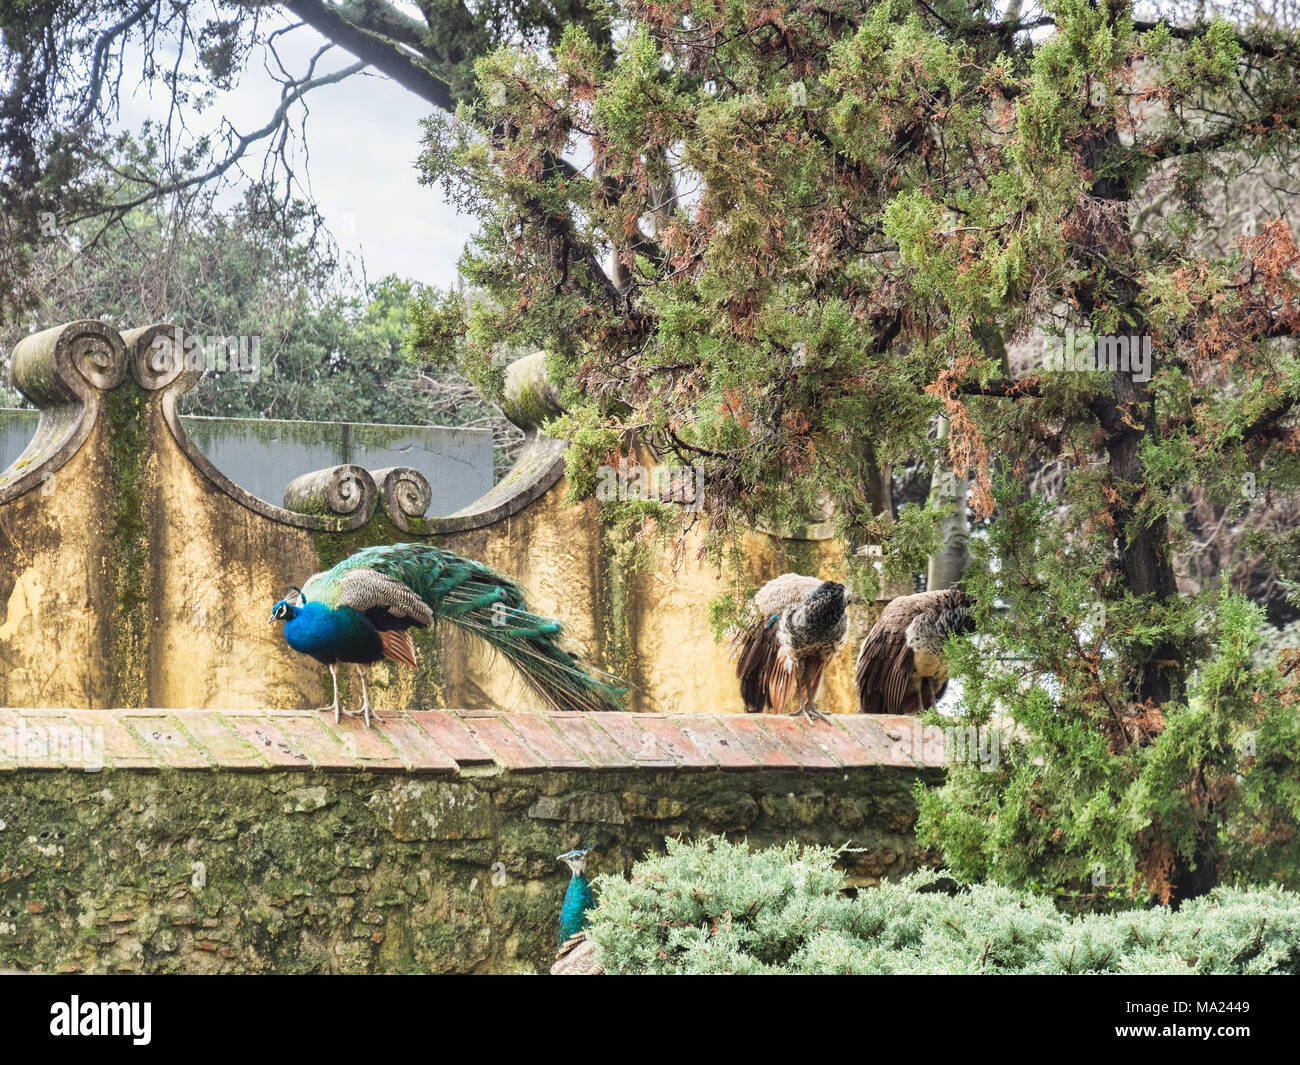 1 March 2018: Lisbon, Portugal - Peacocks and Peahens at the Moorish Castle. - Stock Image